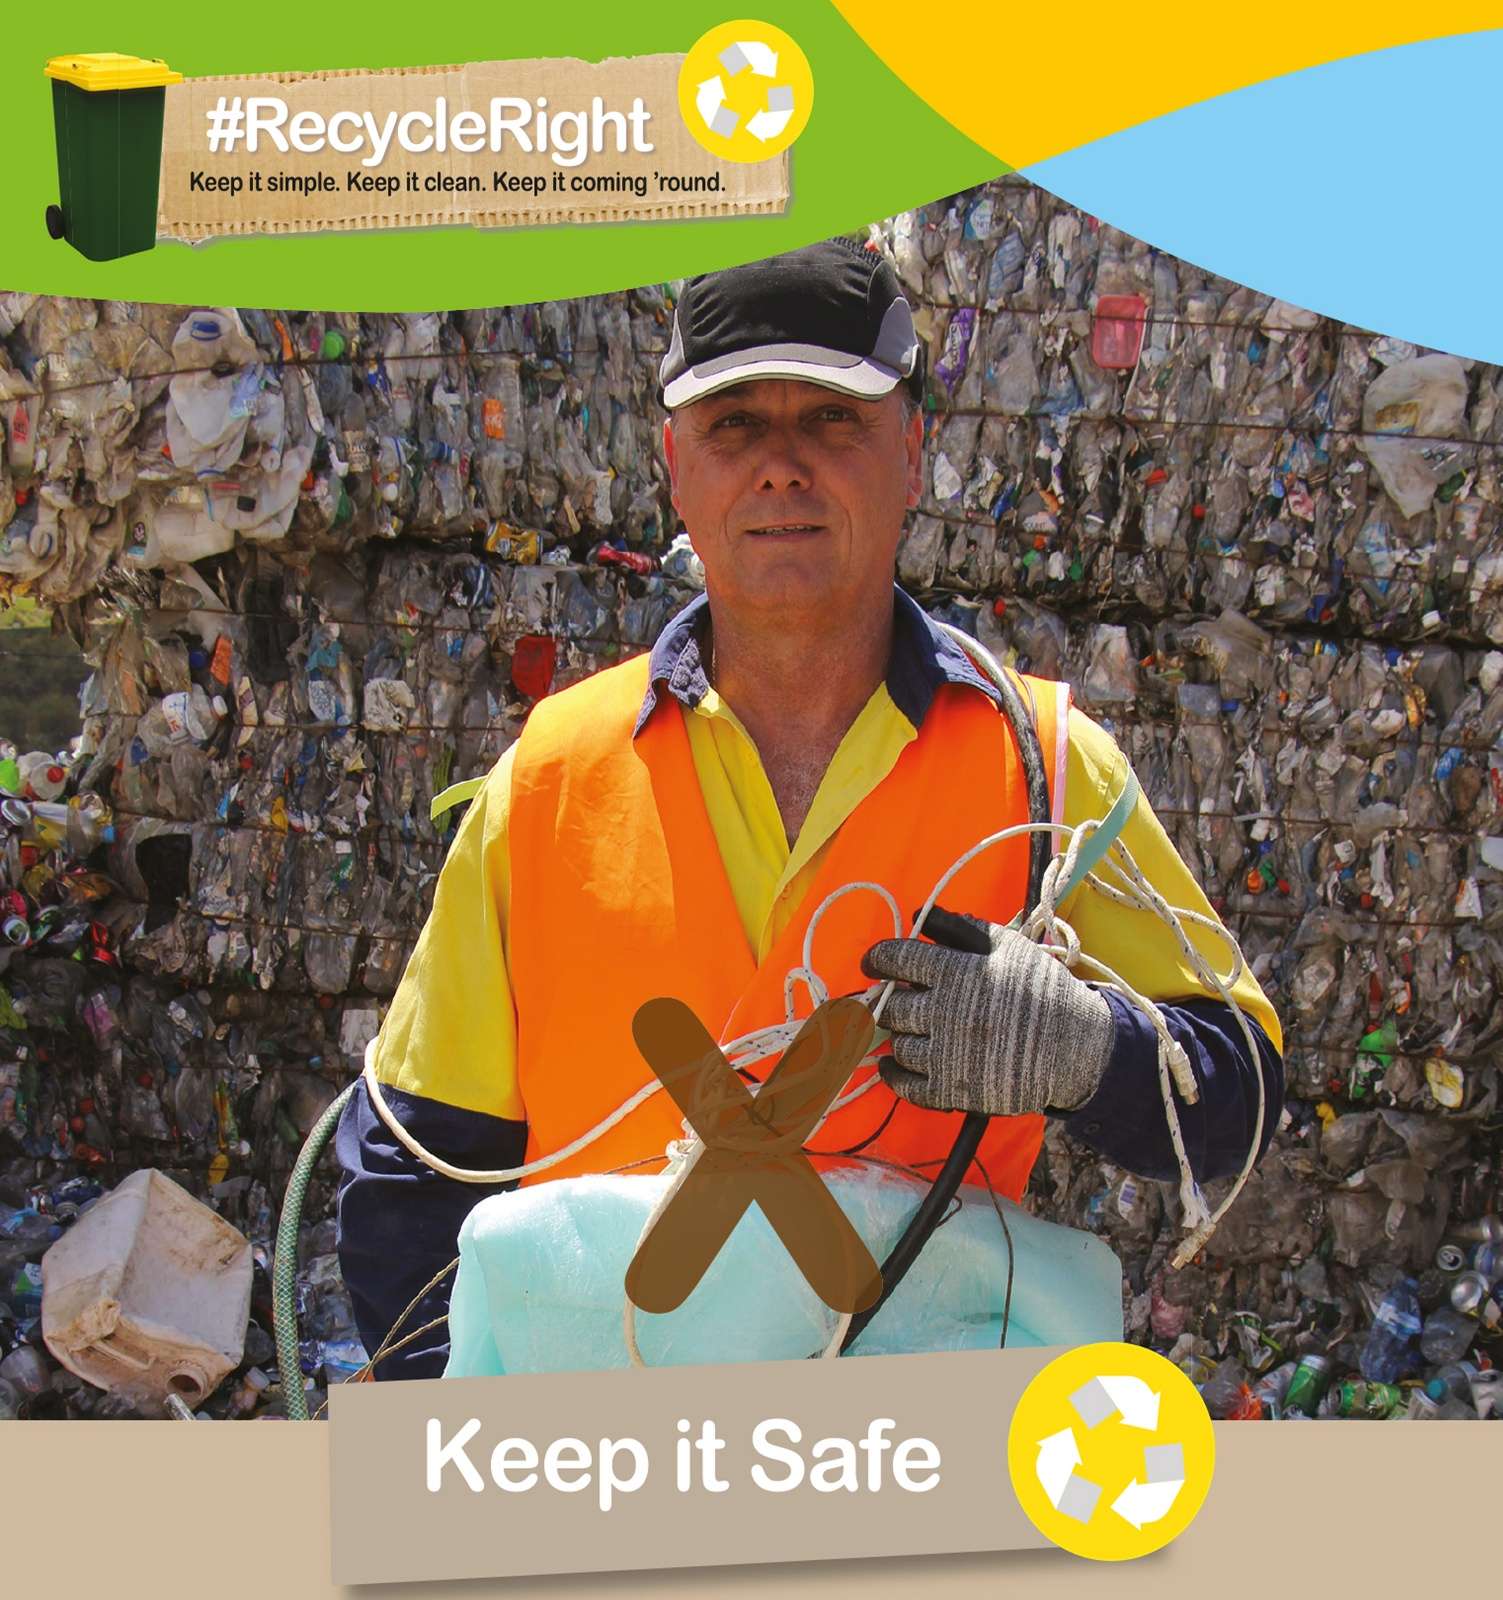 Recycle Right to reduce landfill